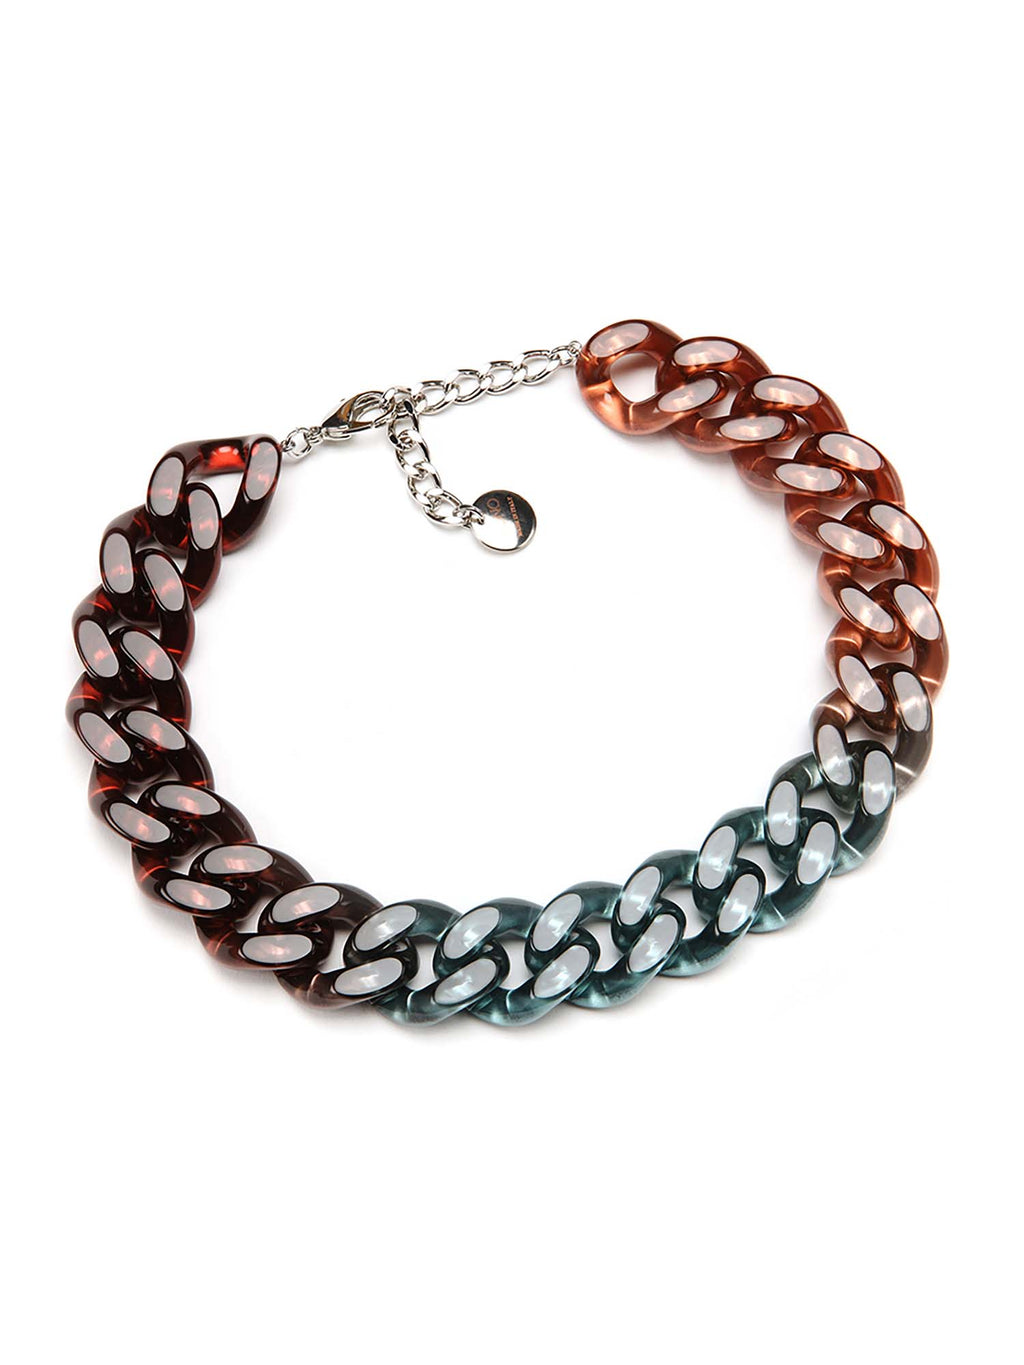 PONO Colette Plume Necklace